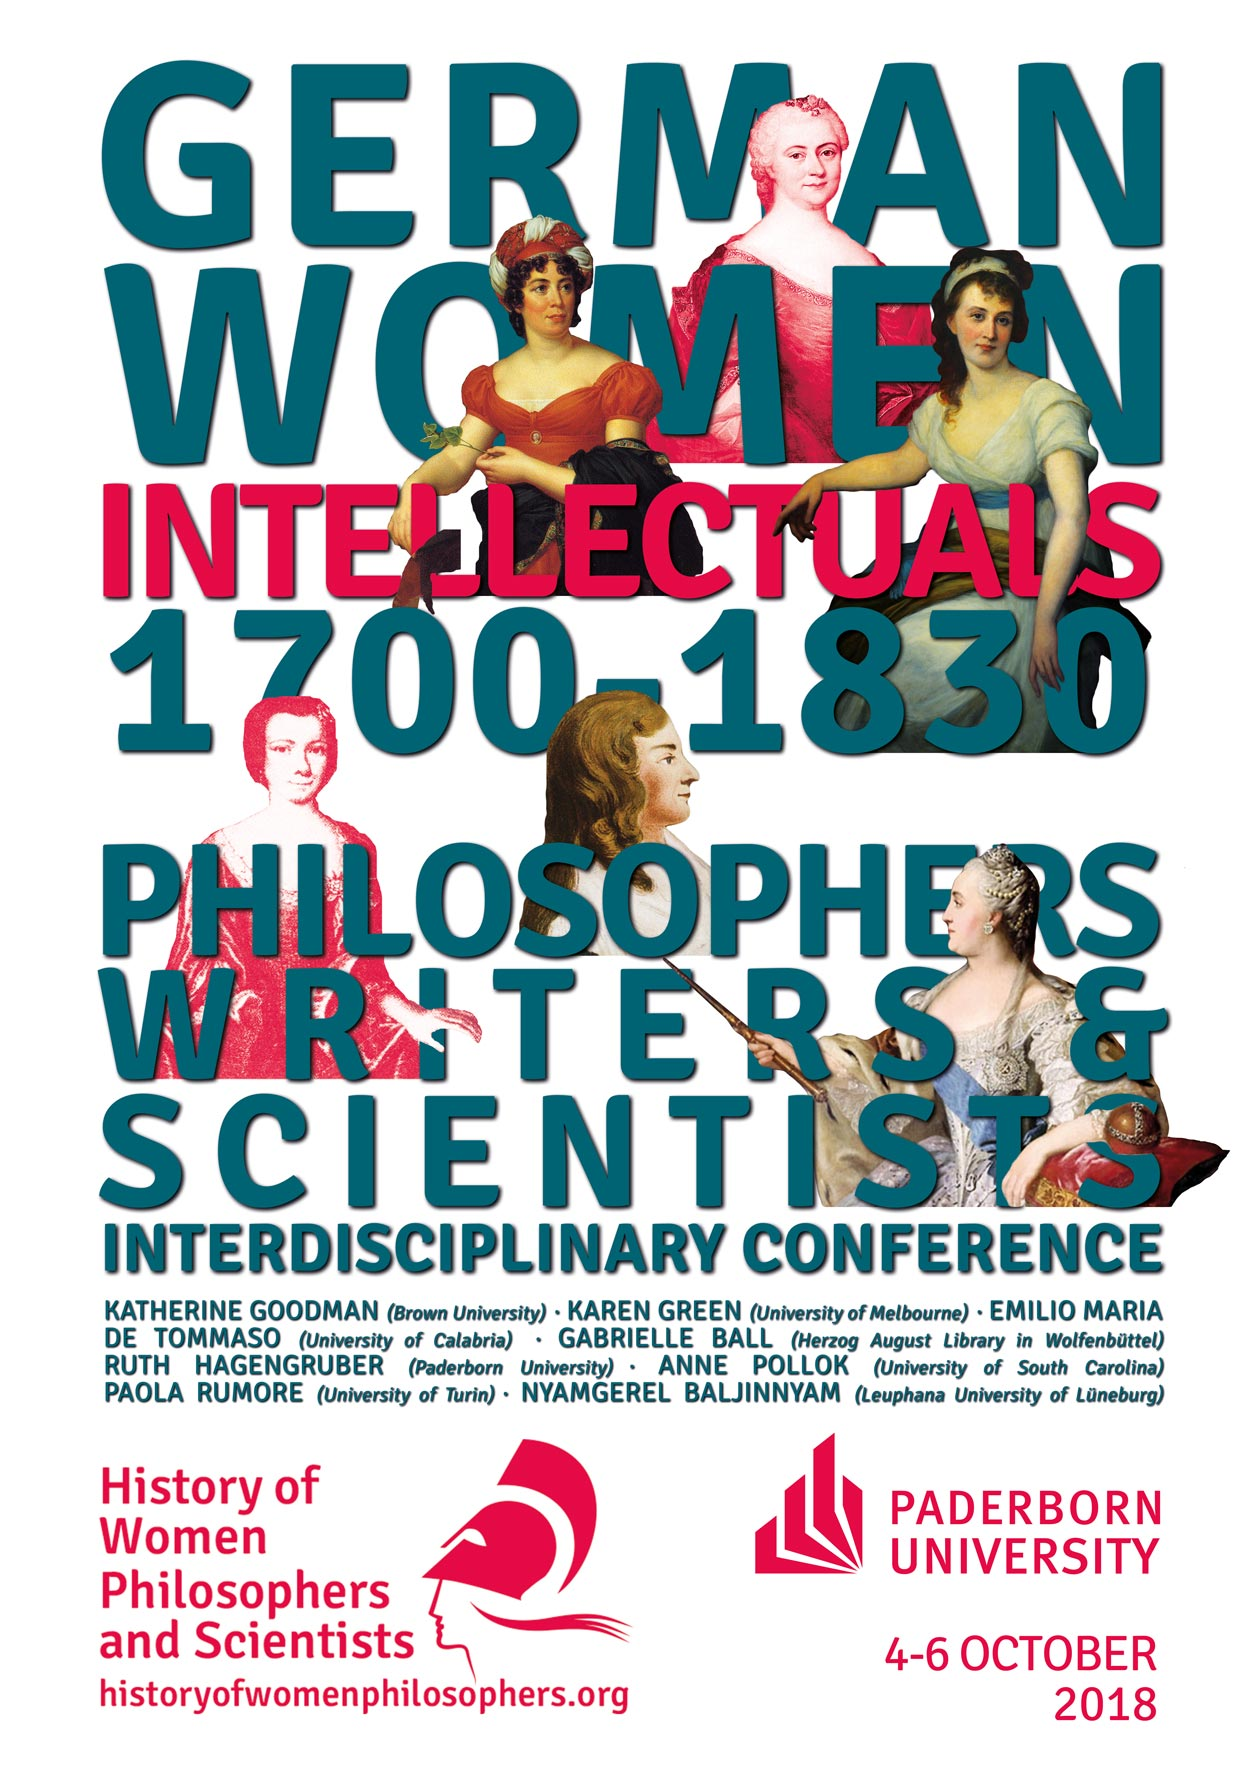 German Women Intellectuals 1700-1830